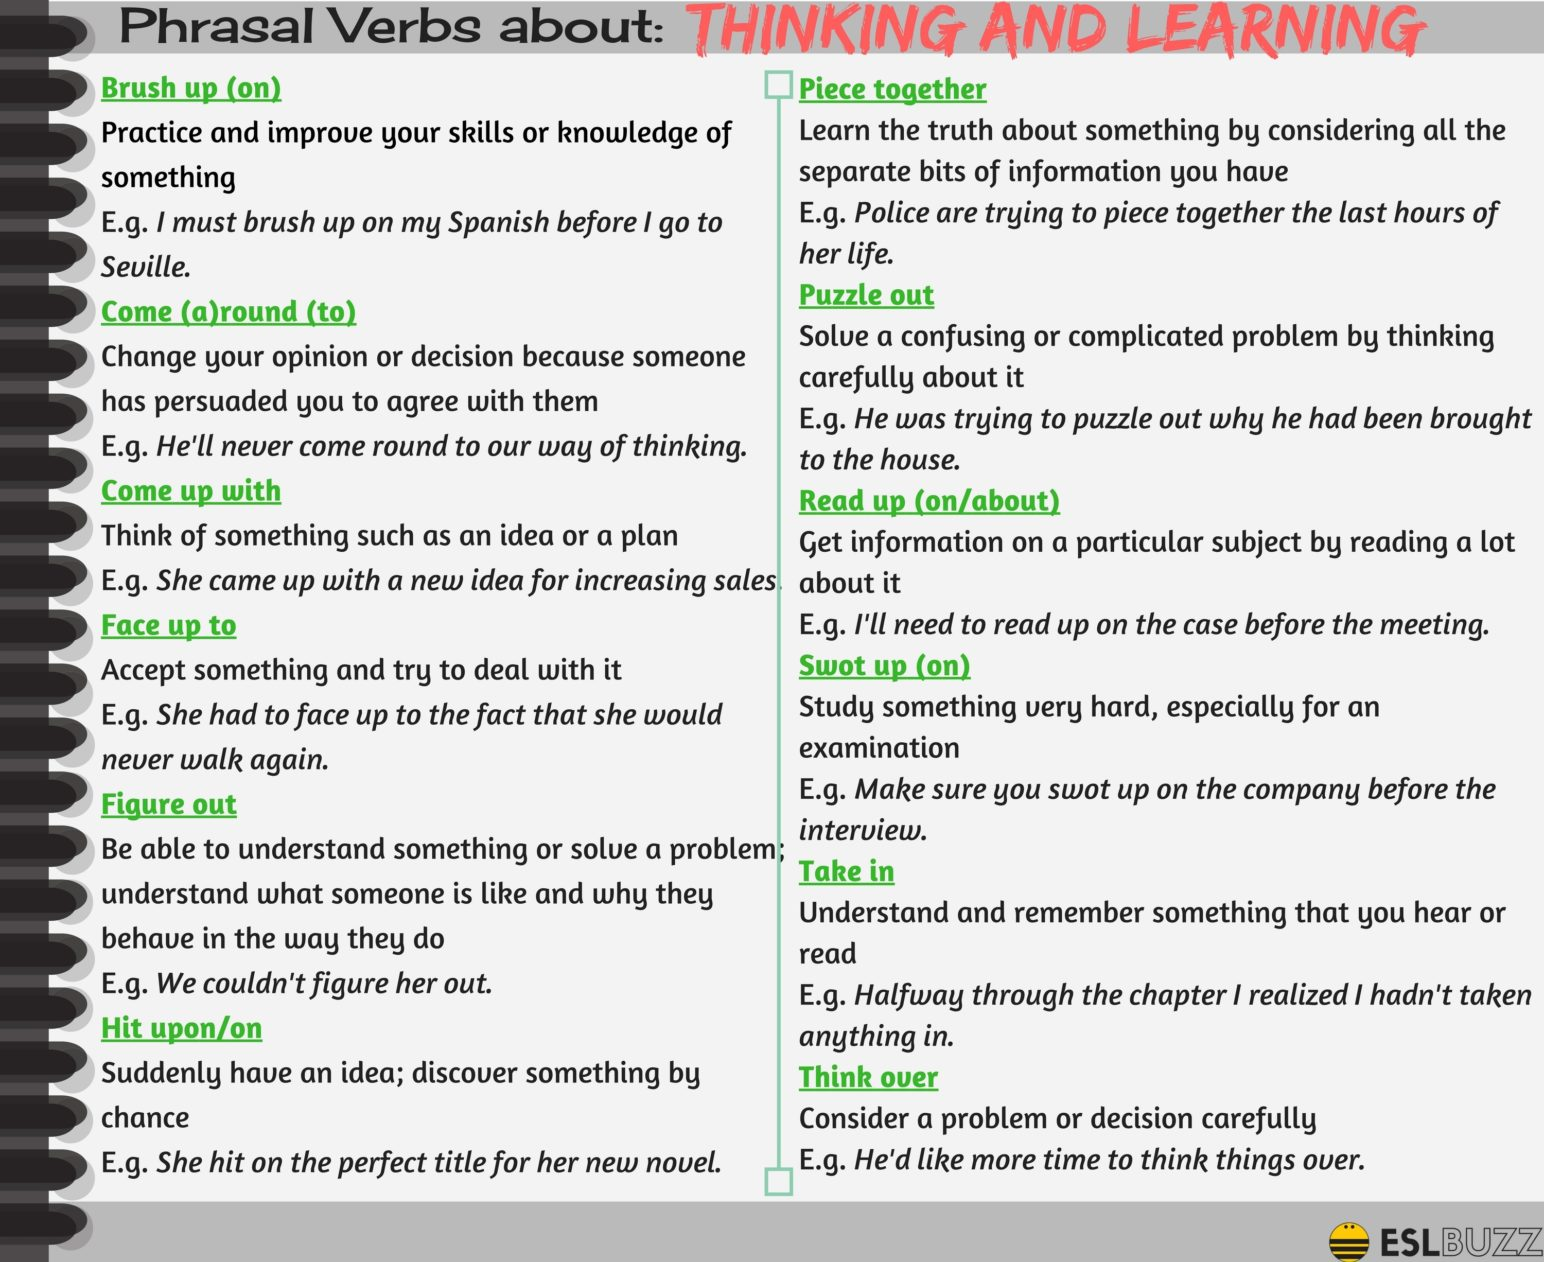 English Phrasal Verbs for Communication 1